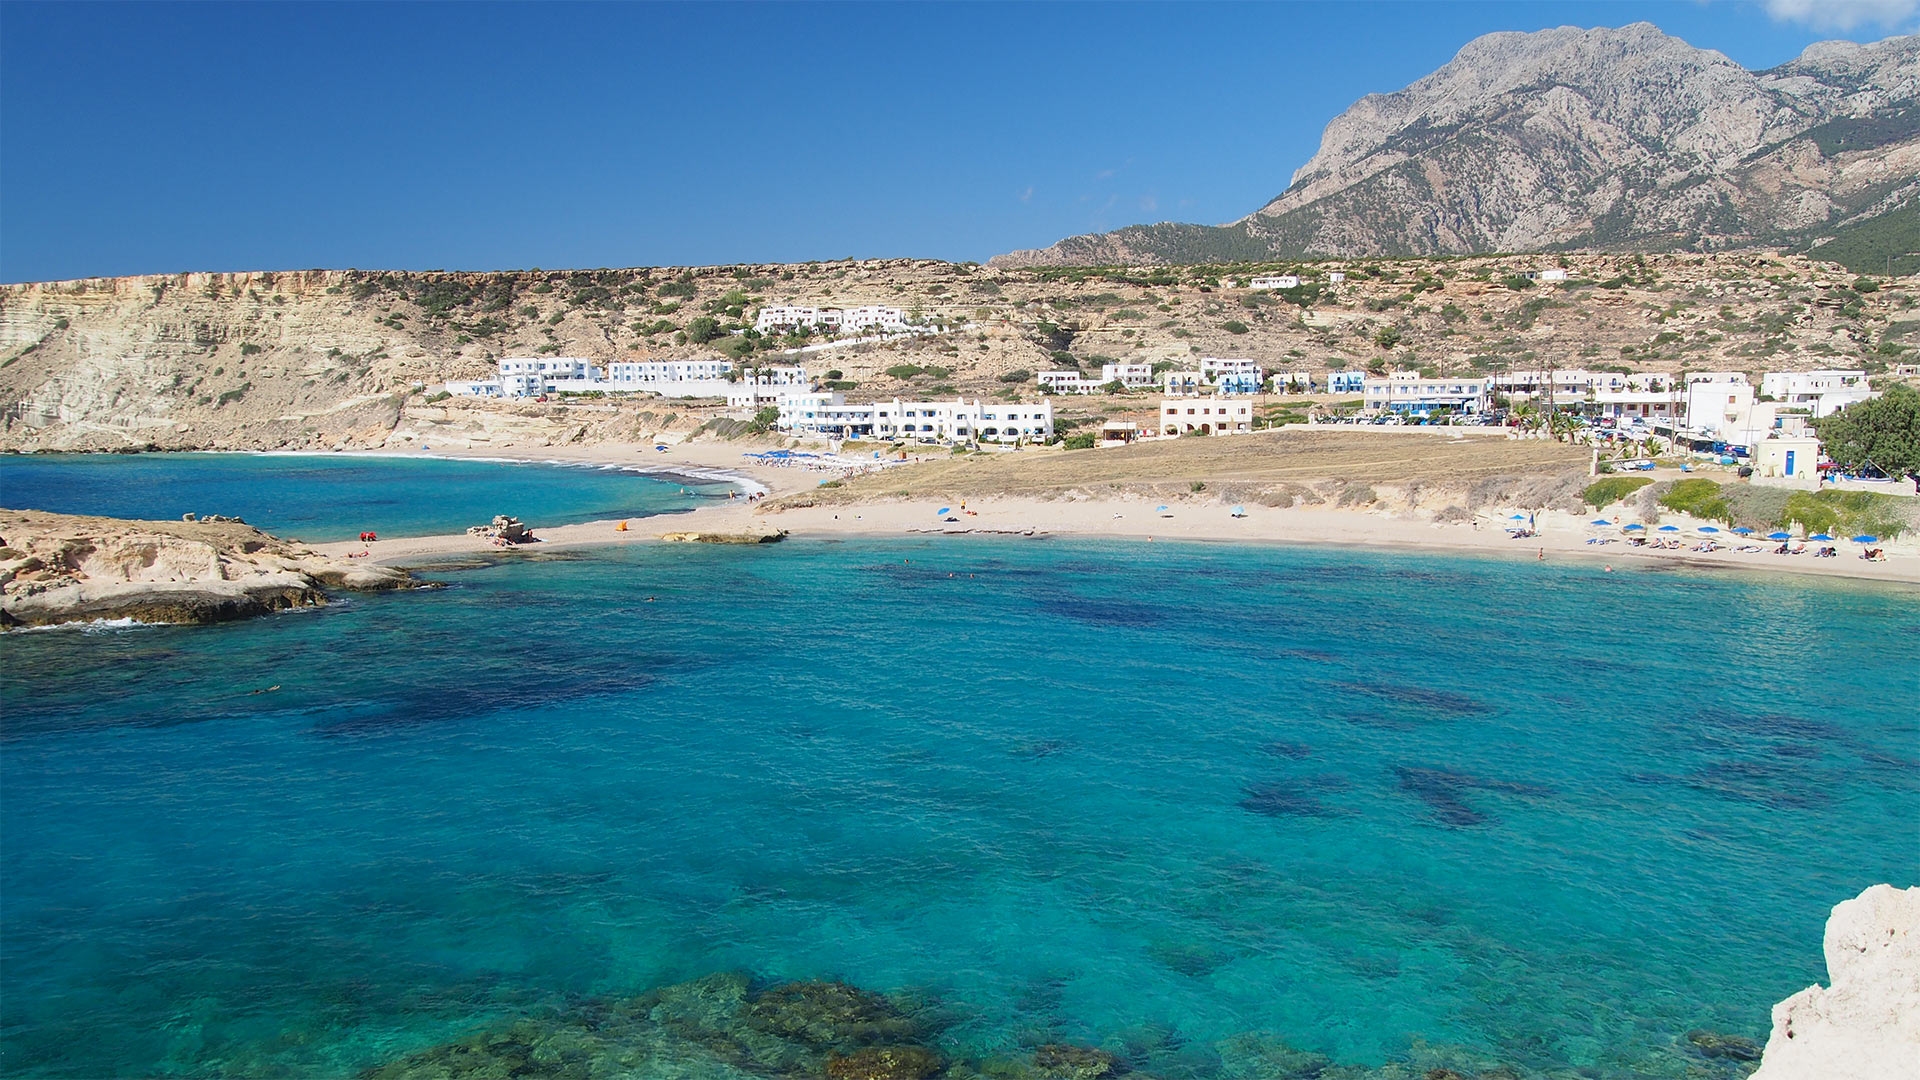 images/slider/lefkos-beach-karpathos-slider.jpg